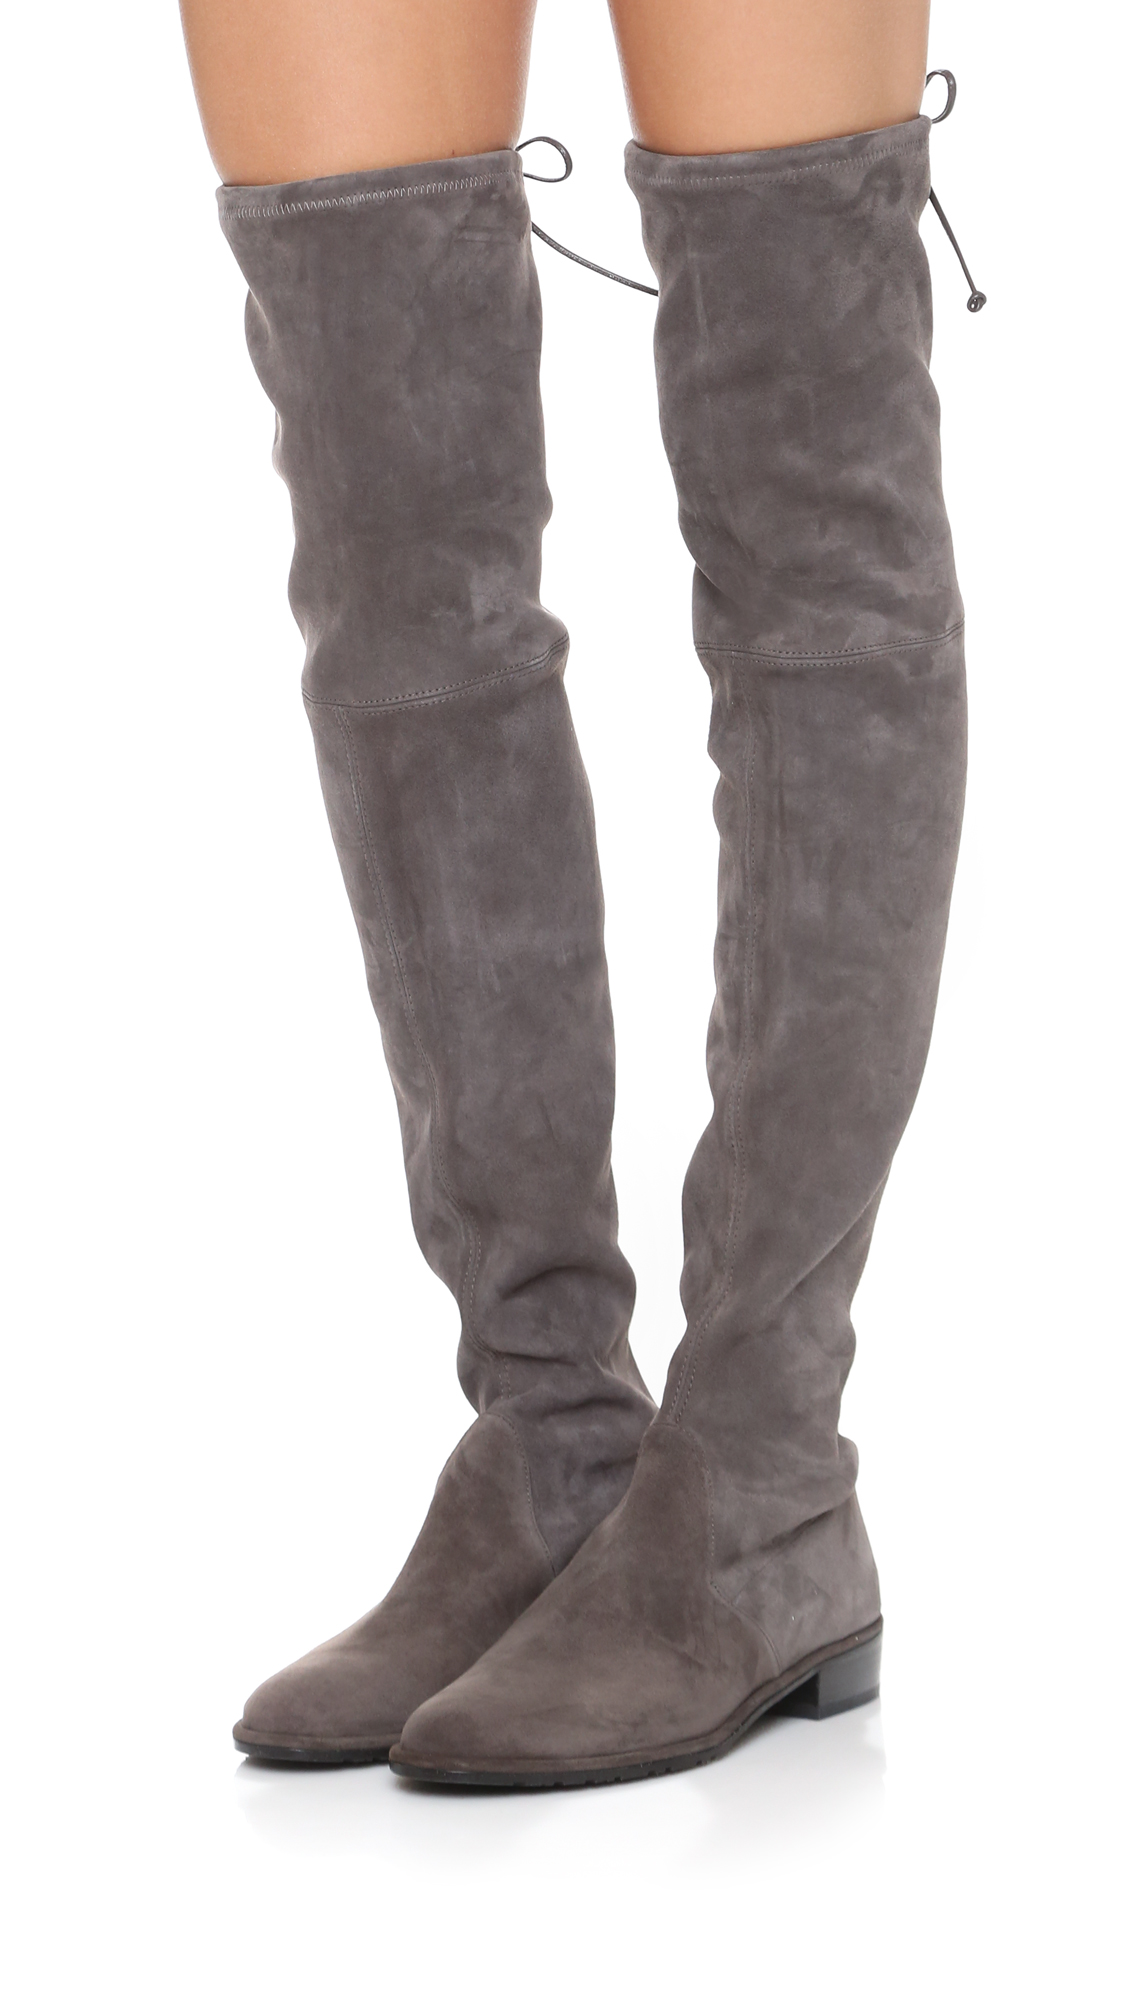 Stuart Weitzman Women's Lowland Stretch Suede Over-the-Knee Boots qn5HFQ9